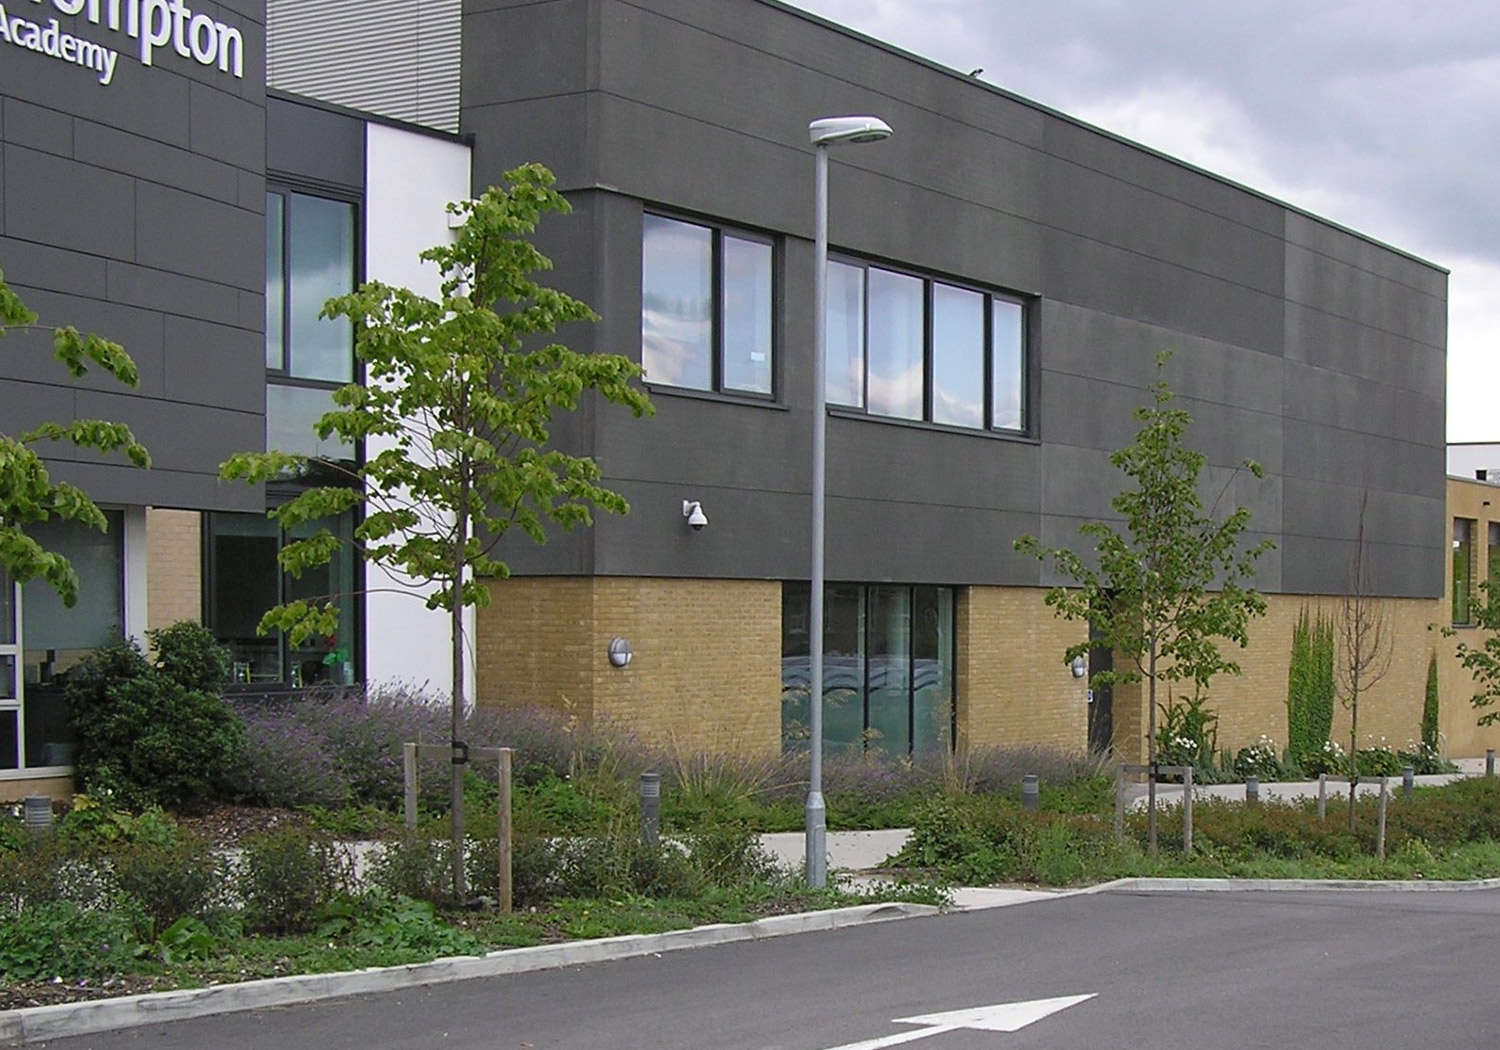 Projects-Education-Brompton-Photo-1500x1050